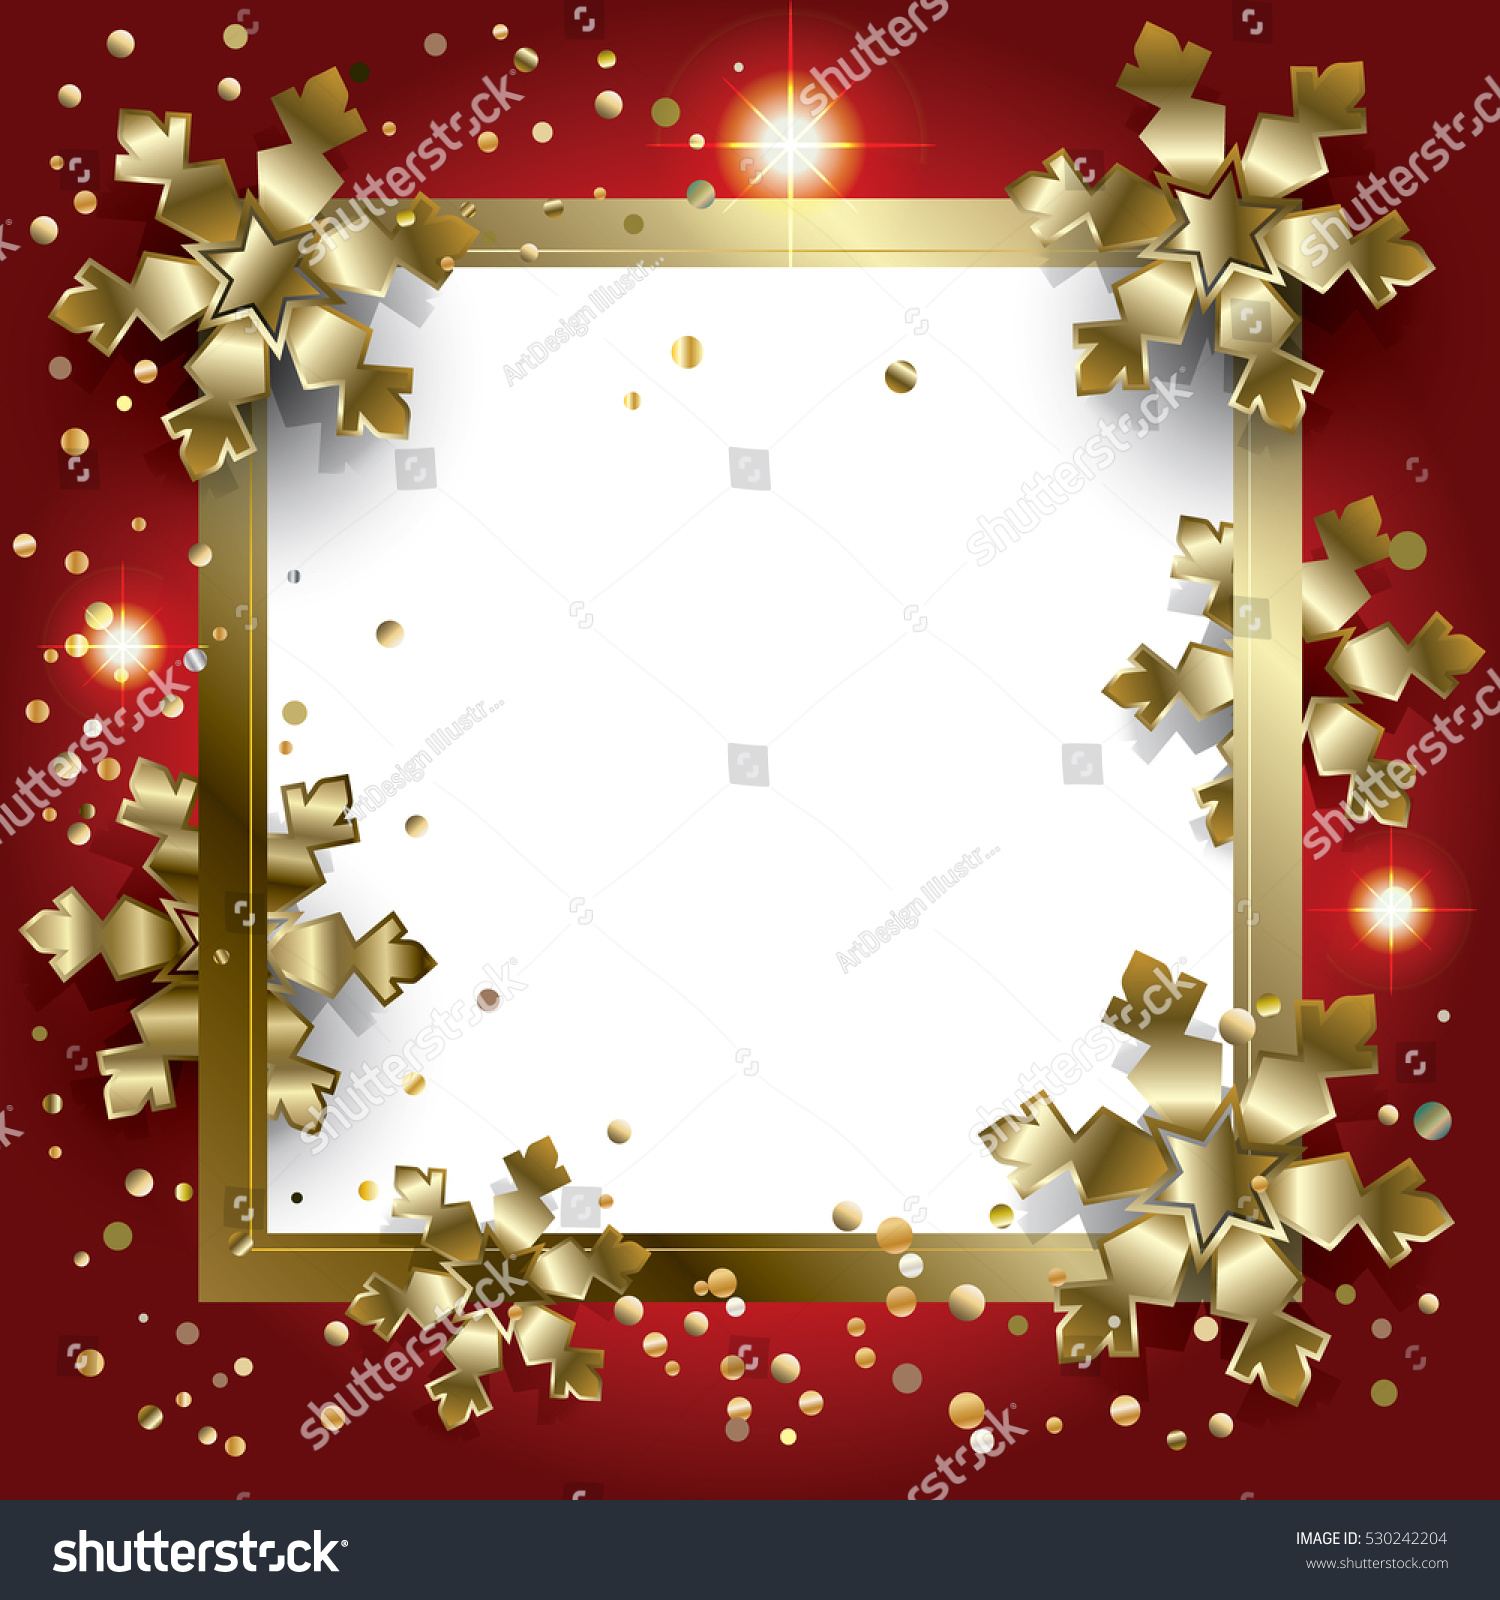 Merry Christmas Happy New Year Frame Stock Illustration 530242204 ...